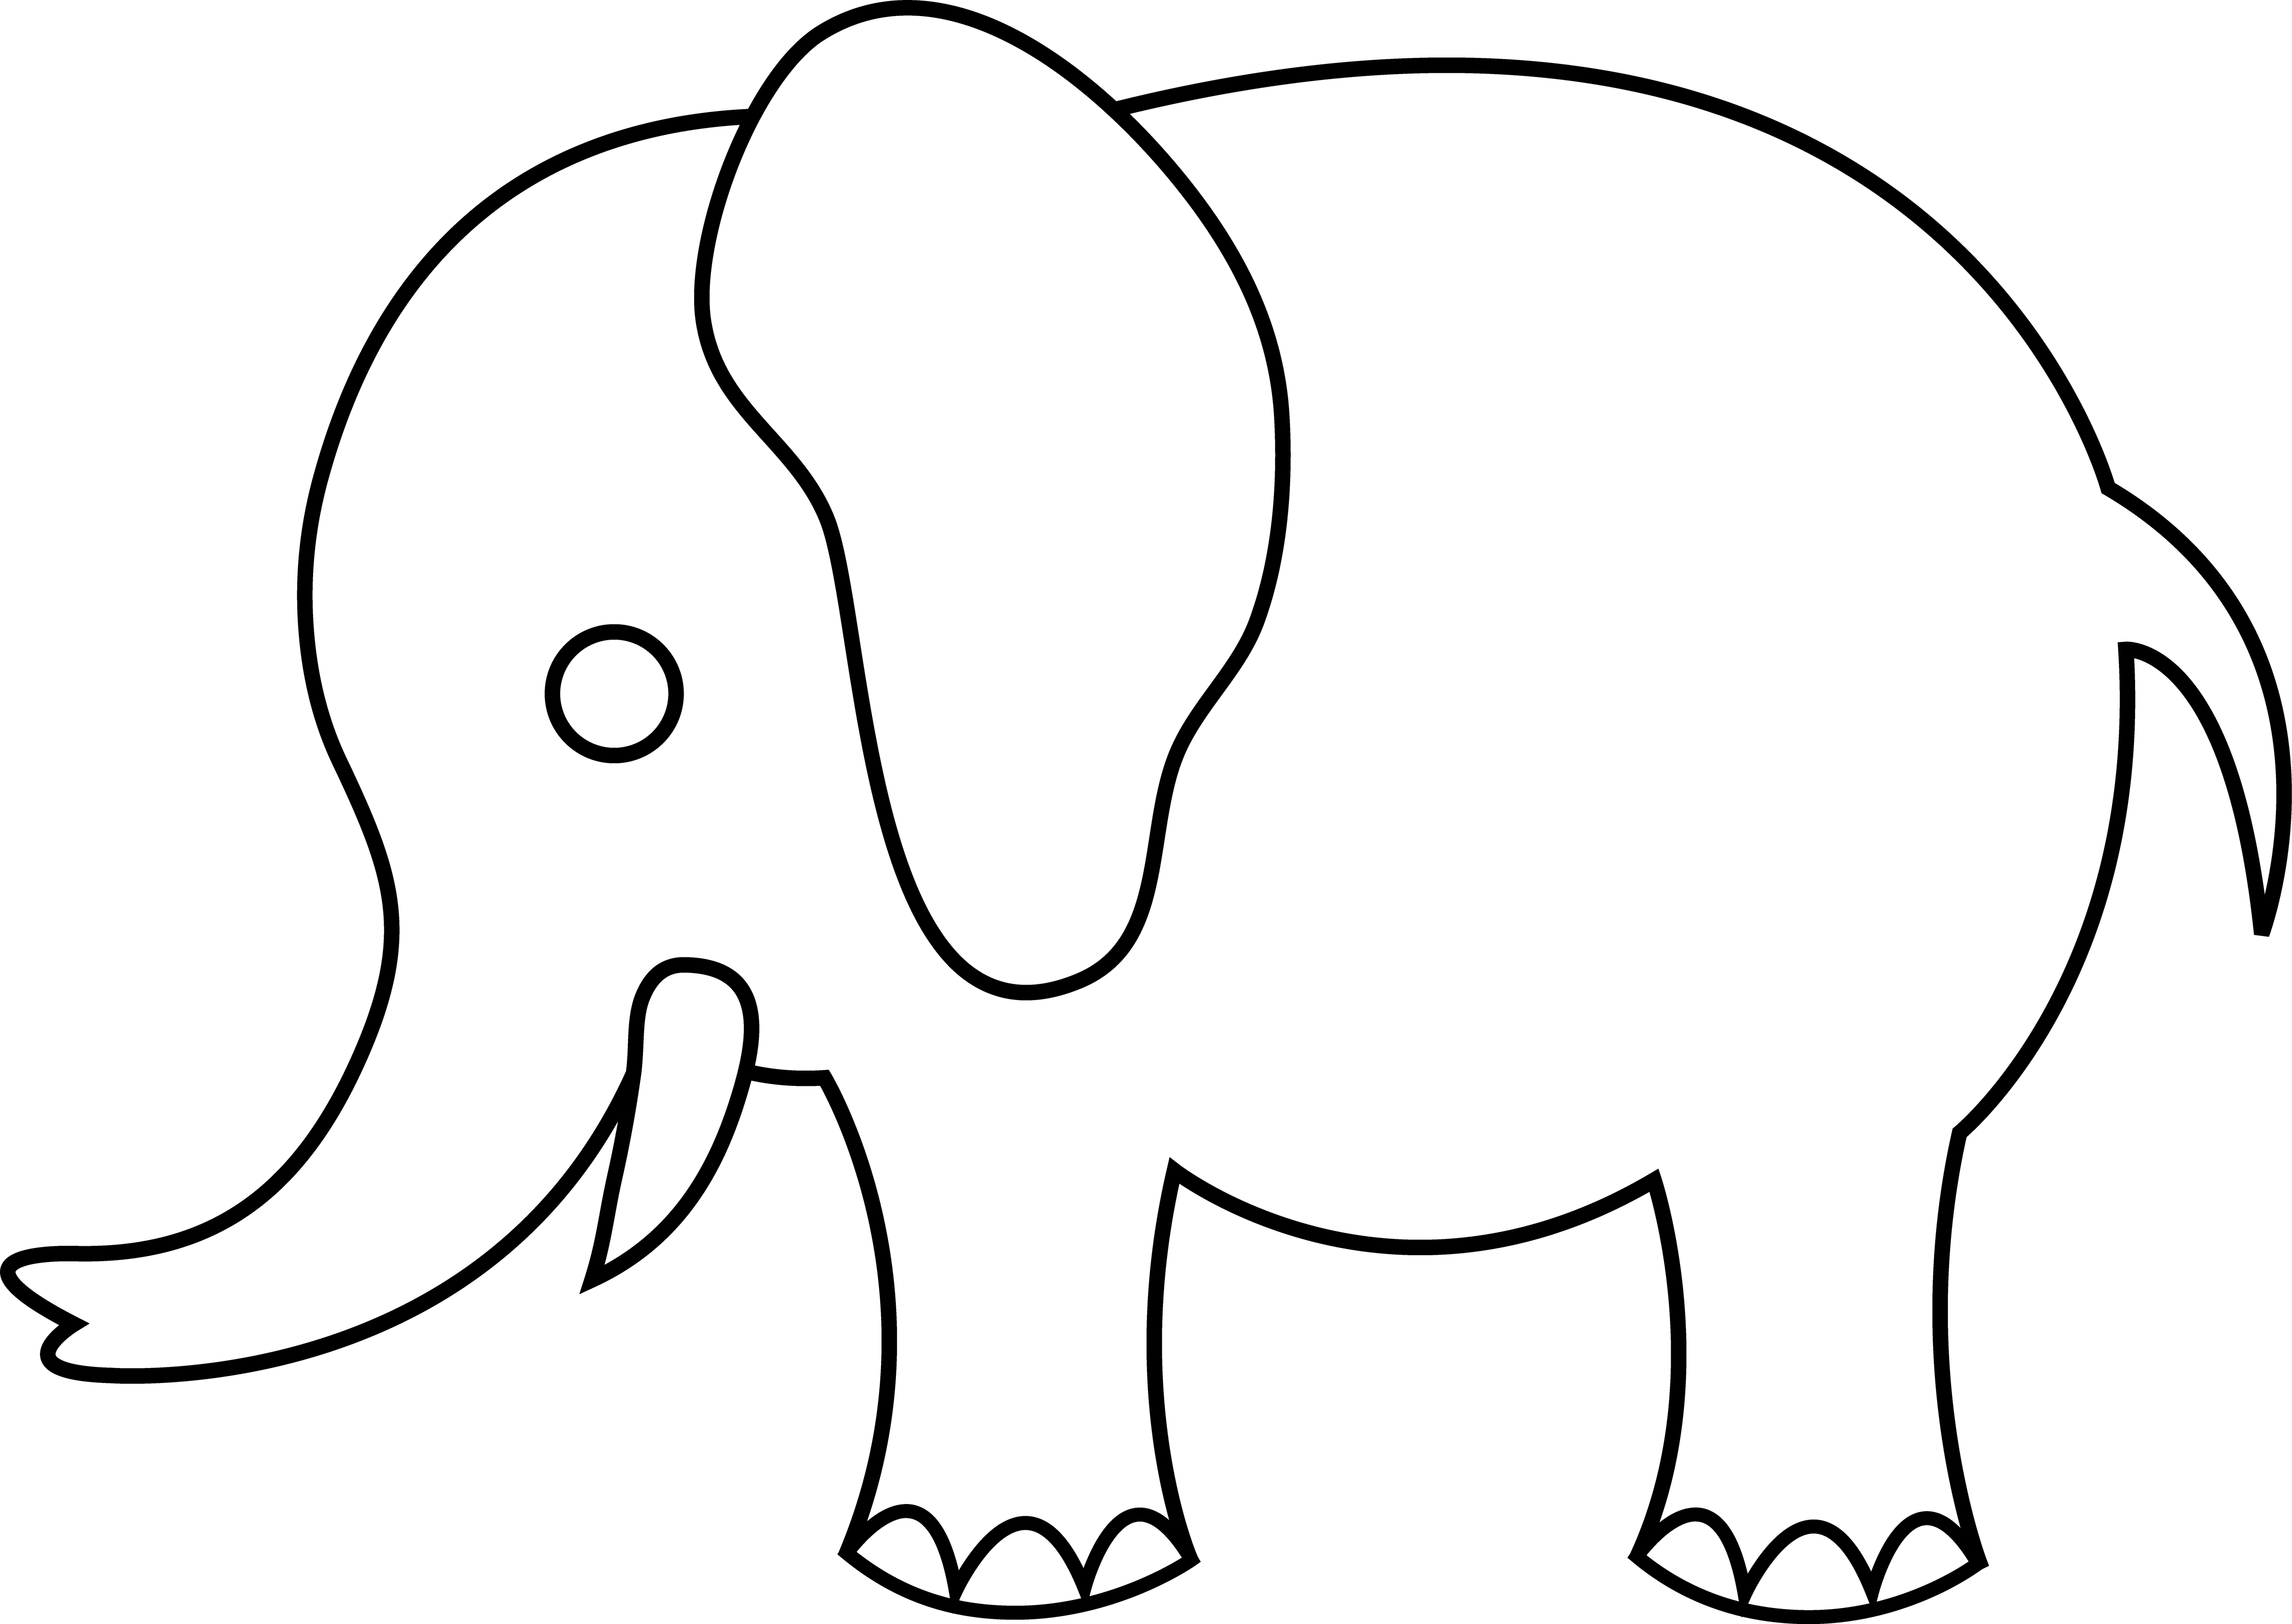 Shapes clipart elephant. Free outline cliparts download